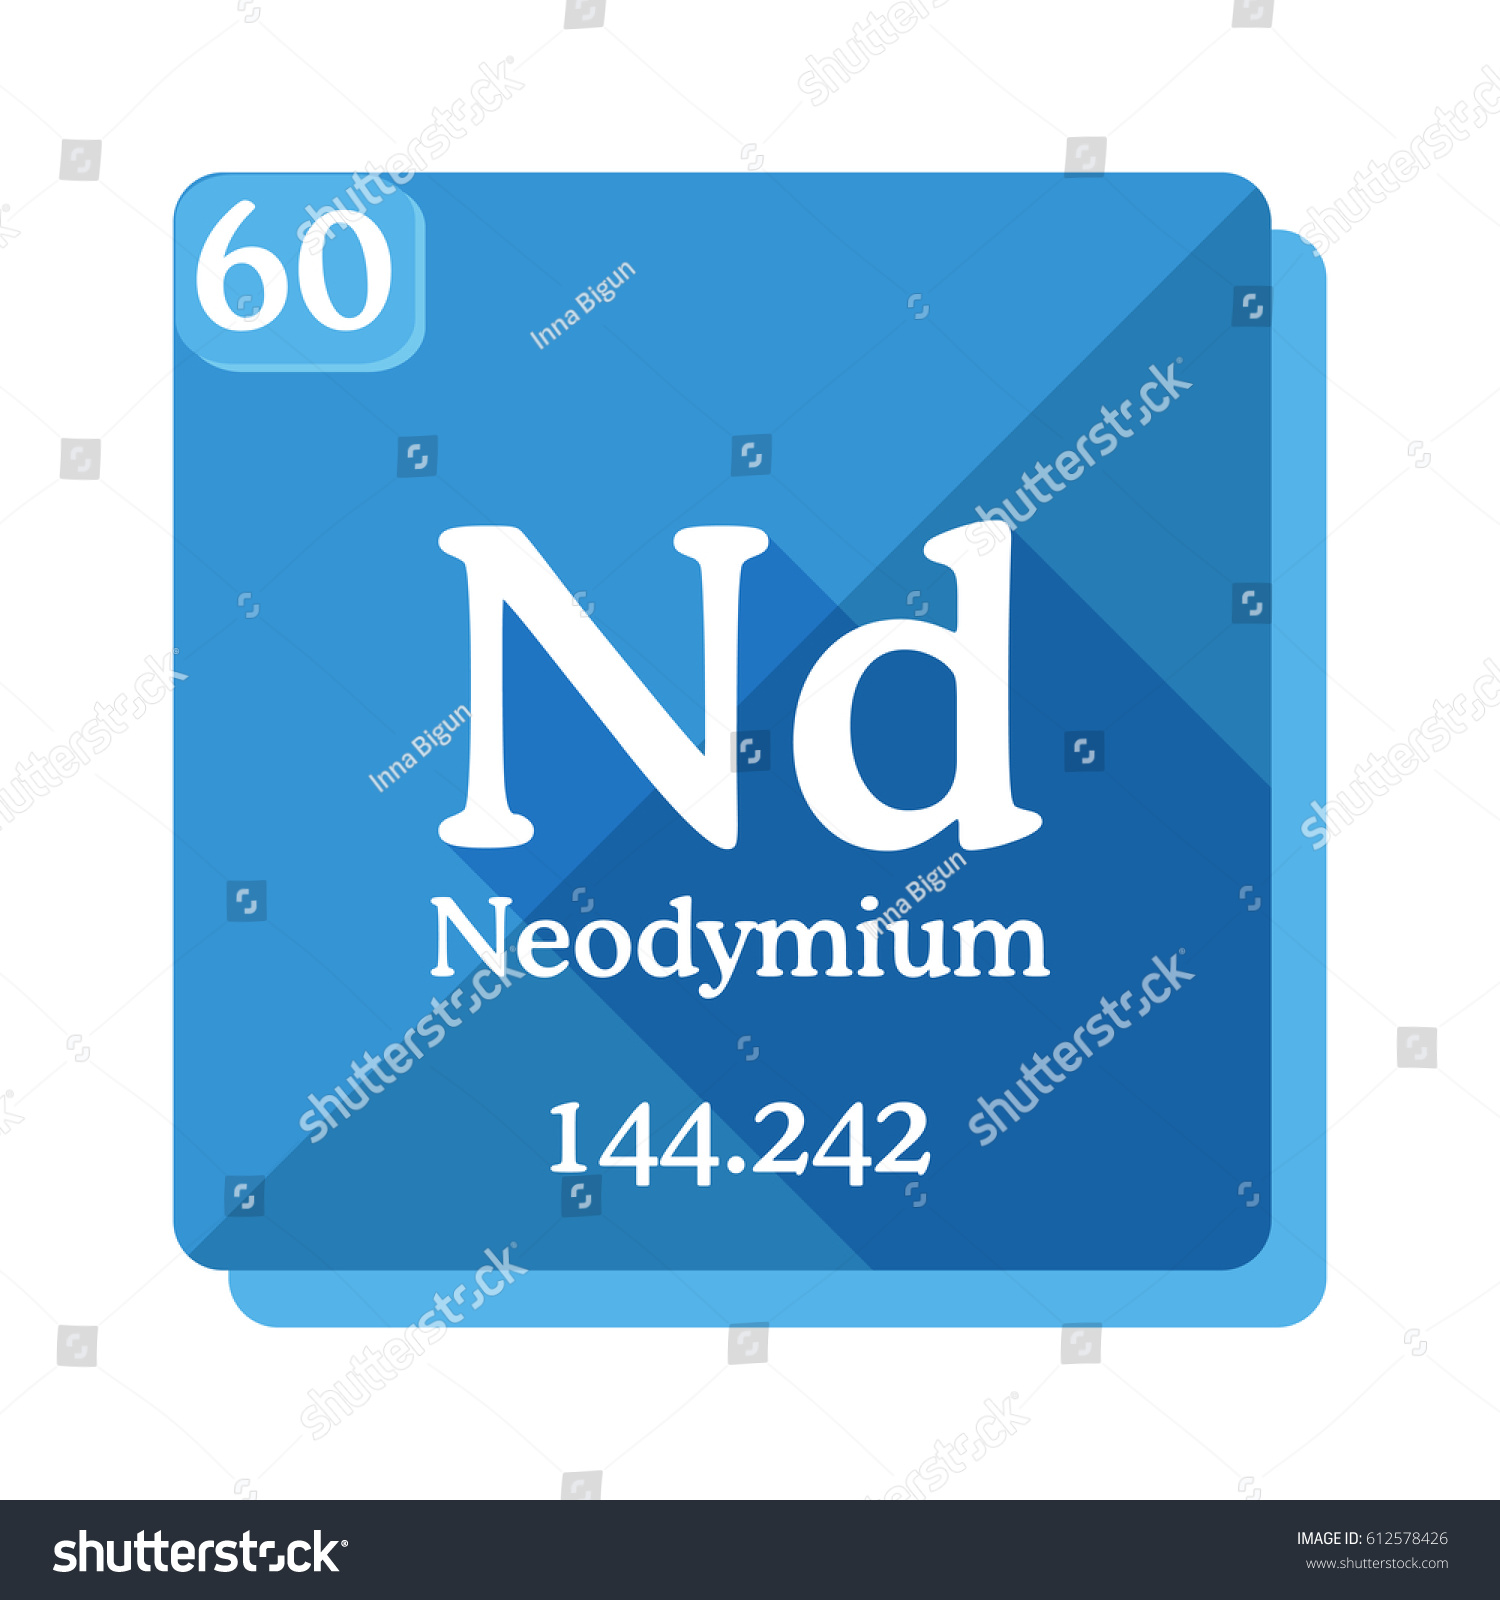 Neodymium nd element periodic table vector stock vector 612578426 neodymium nd element of the periodic table vector illustration in flat style gamestrikefo Choice Image